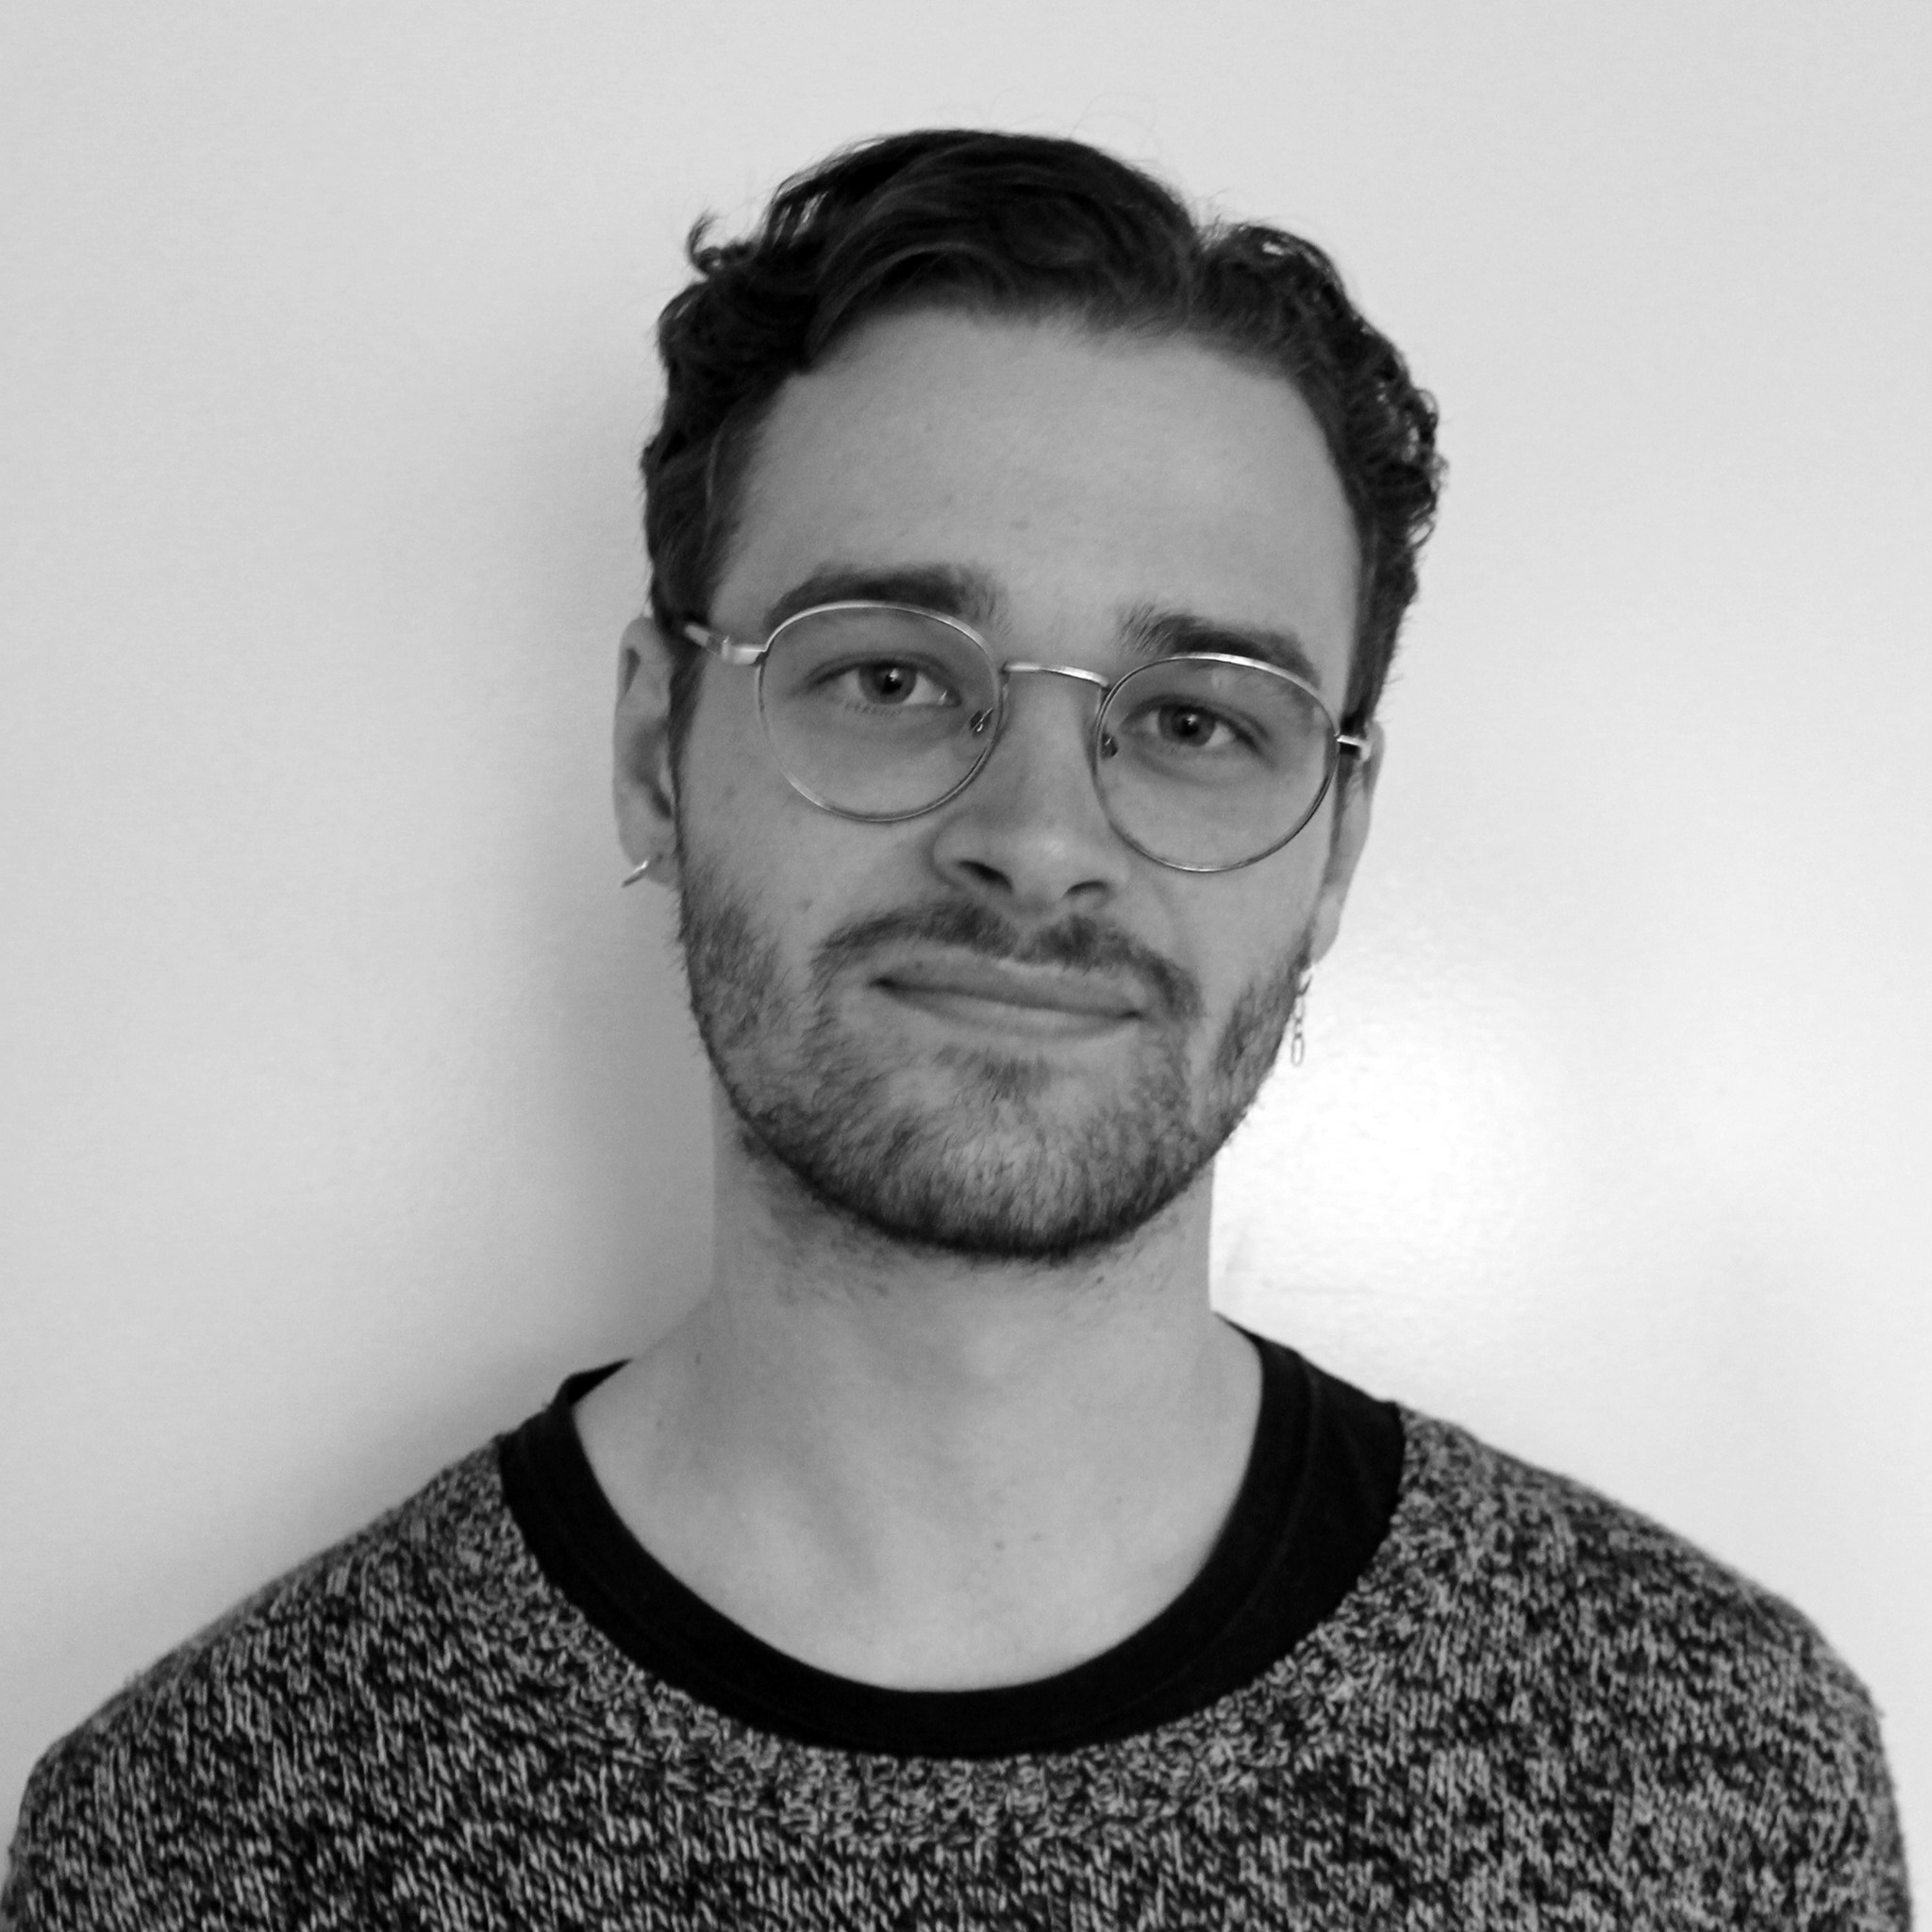 Hi, my name's Alex and I'm the Music Creative Producer for Mudfest 2019! I'm a composer working in Melbourne specialising in electronic music and sound art, with a particular interest in installation-based sound works. I have a background composing for film and theatre and also in piano performance. I am currently completing my Masters of Interactive Composition at the VCA. I am hoping to see a diverse program of music for the 2019 festival line-up that encompasses a variety of styles tying into the theme of regeneration!